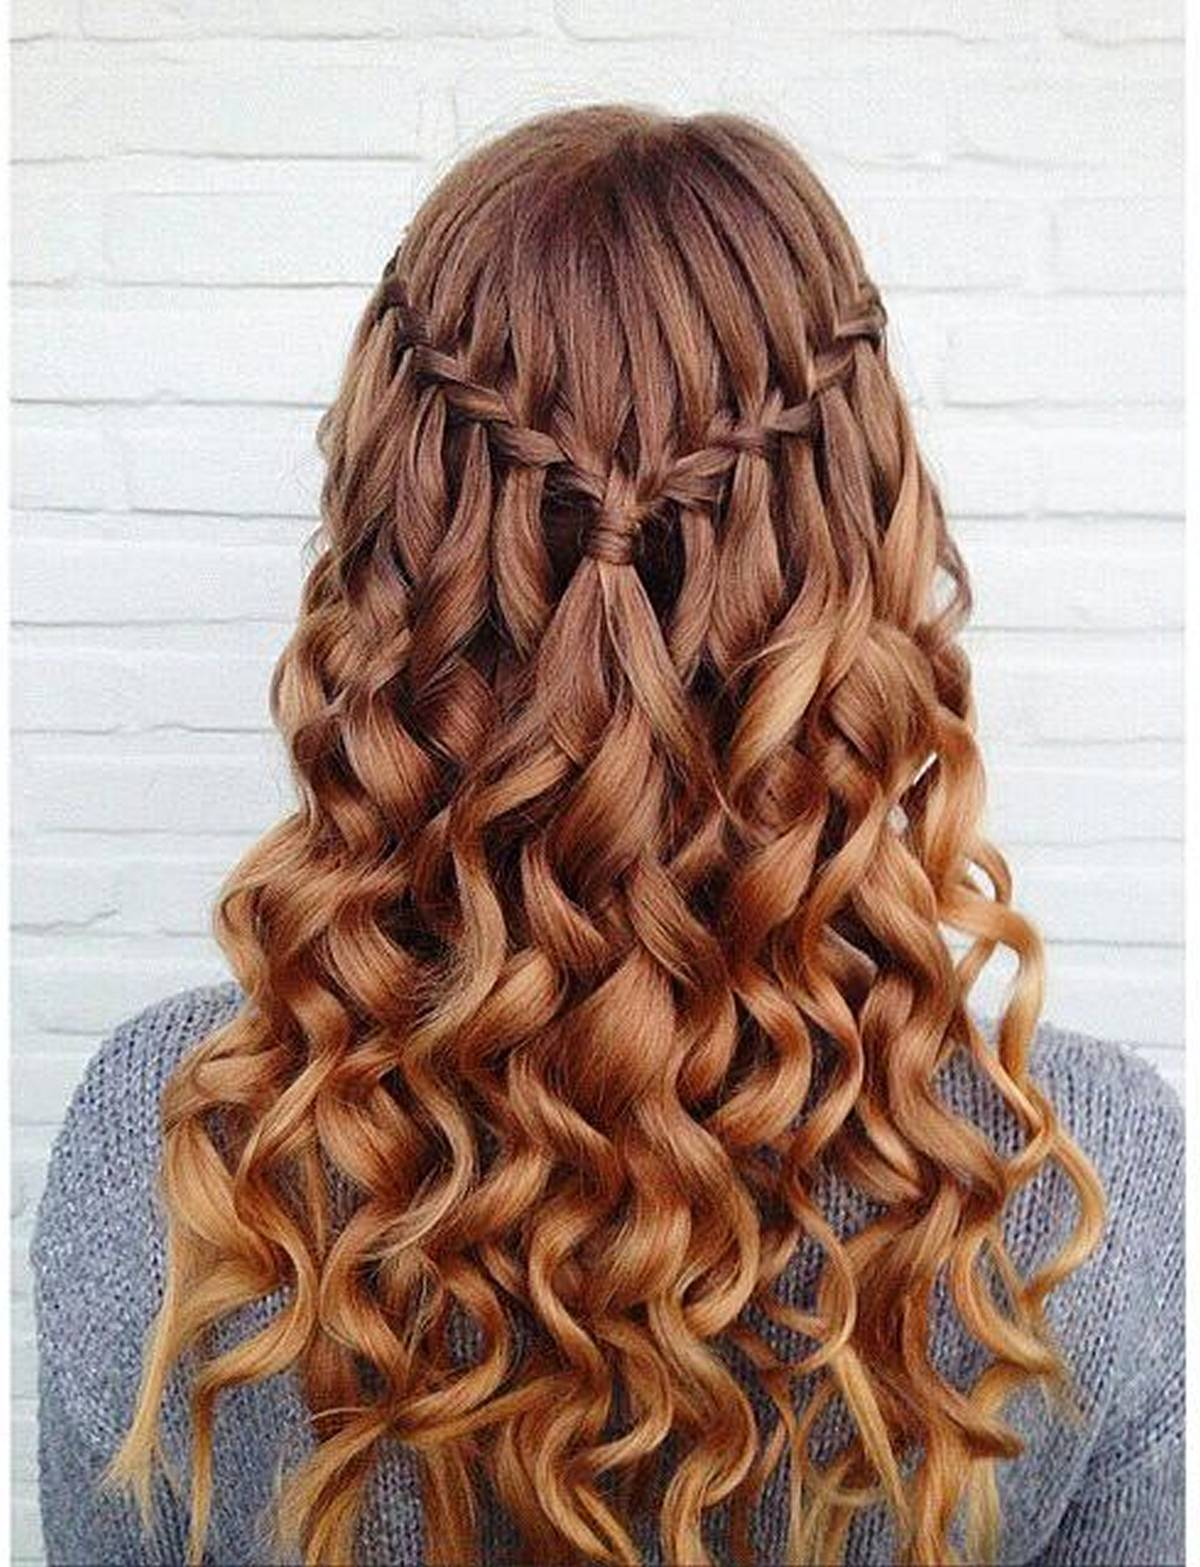 Hairstyles diy and tutorial for all hair lengths 059 | fashion